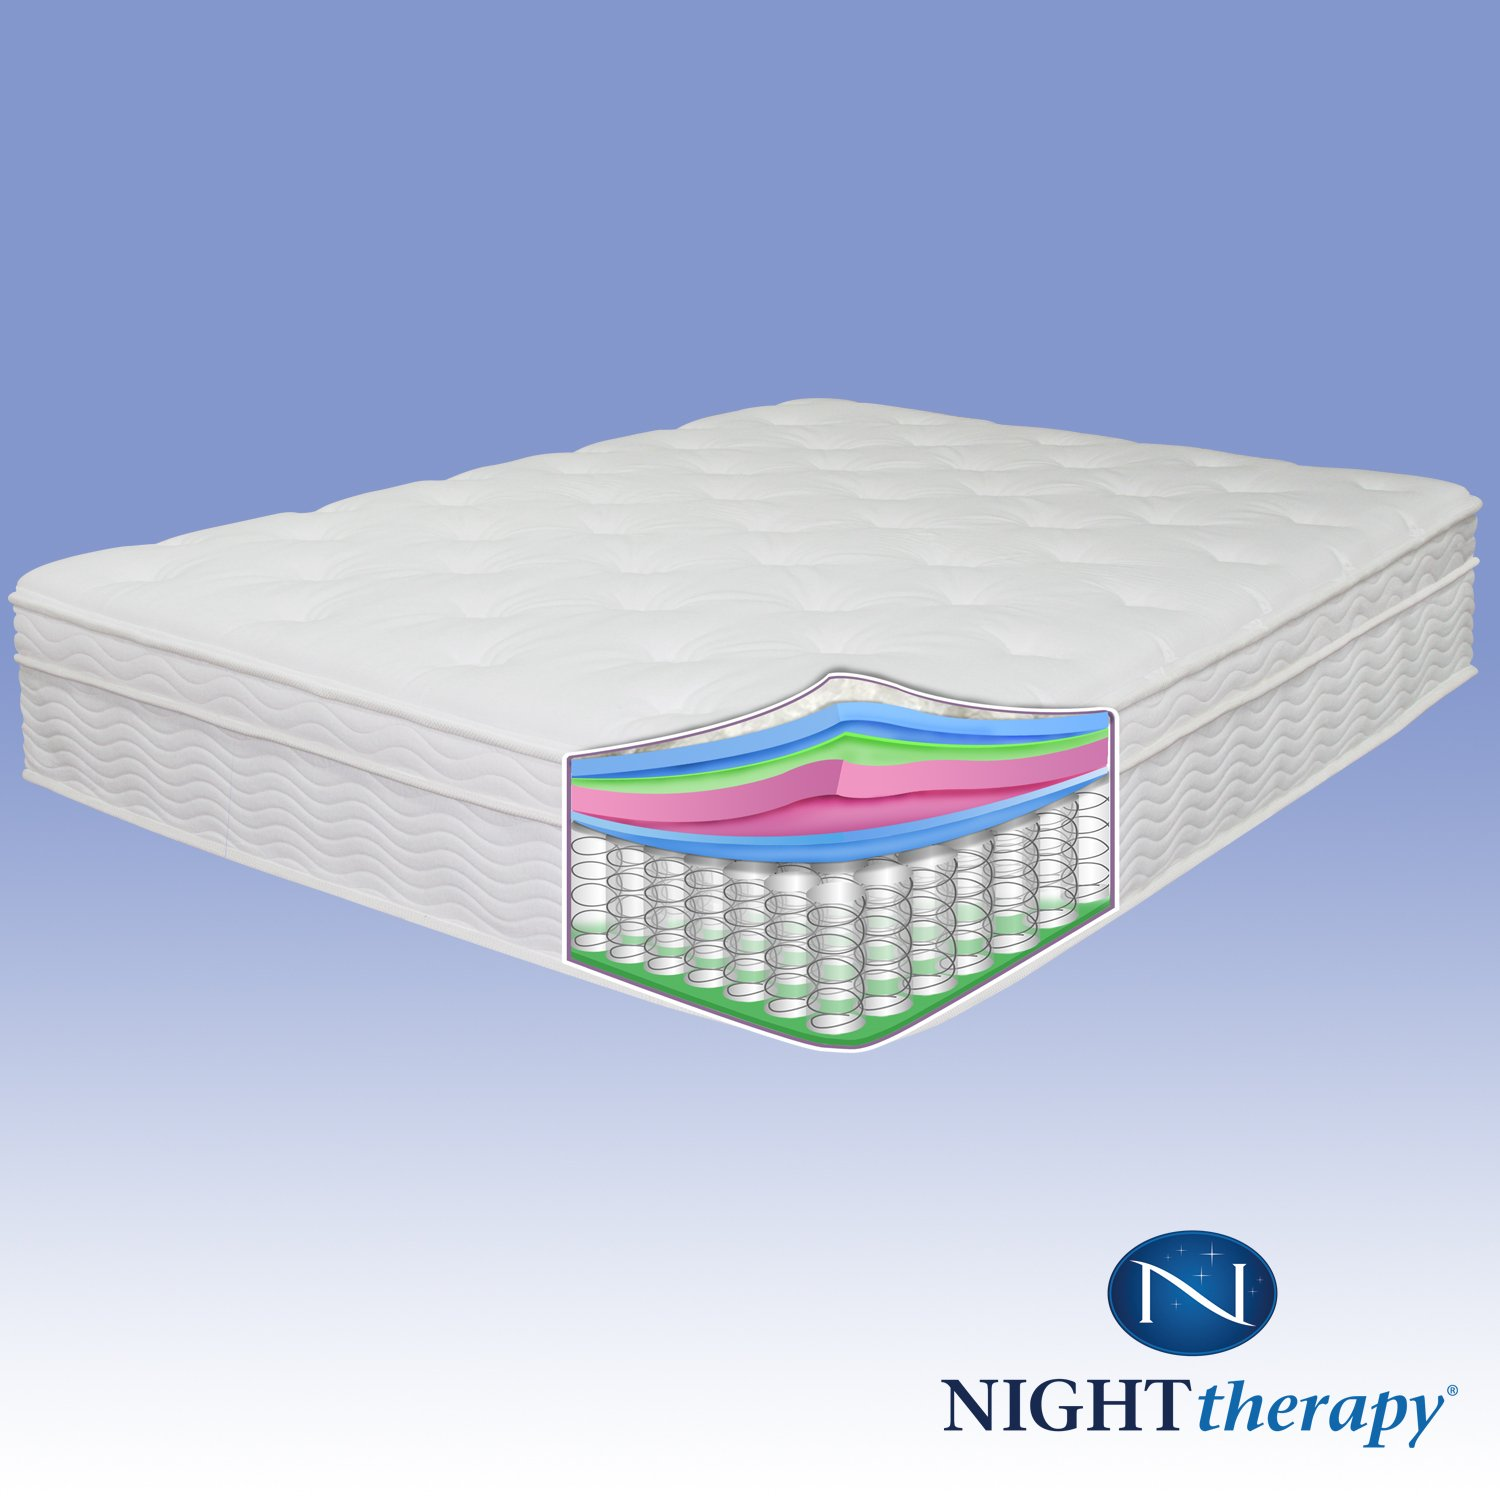 Best Sale Night Therapy 13 Deluxe Euro Box Top Spring Mattress Queen In Best Price